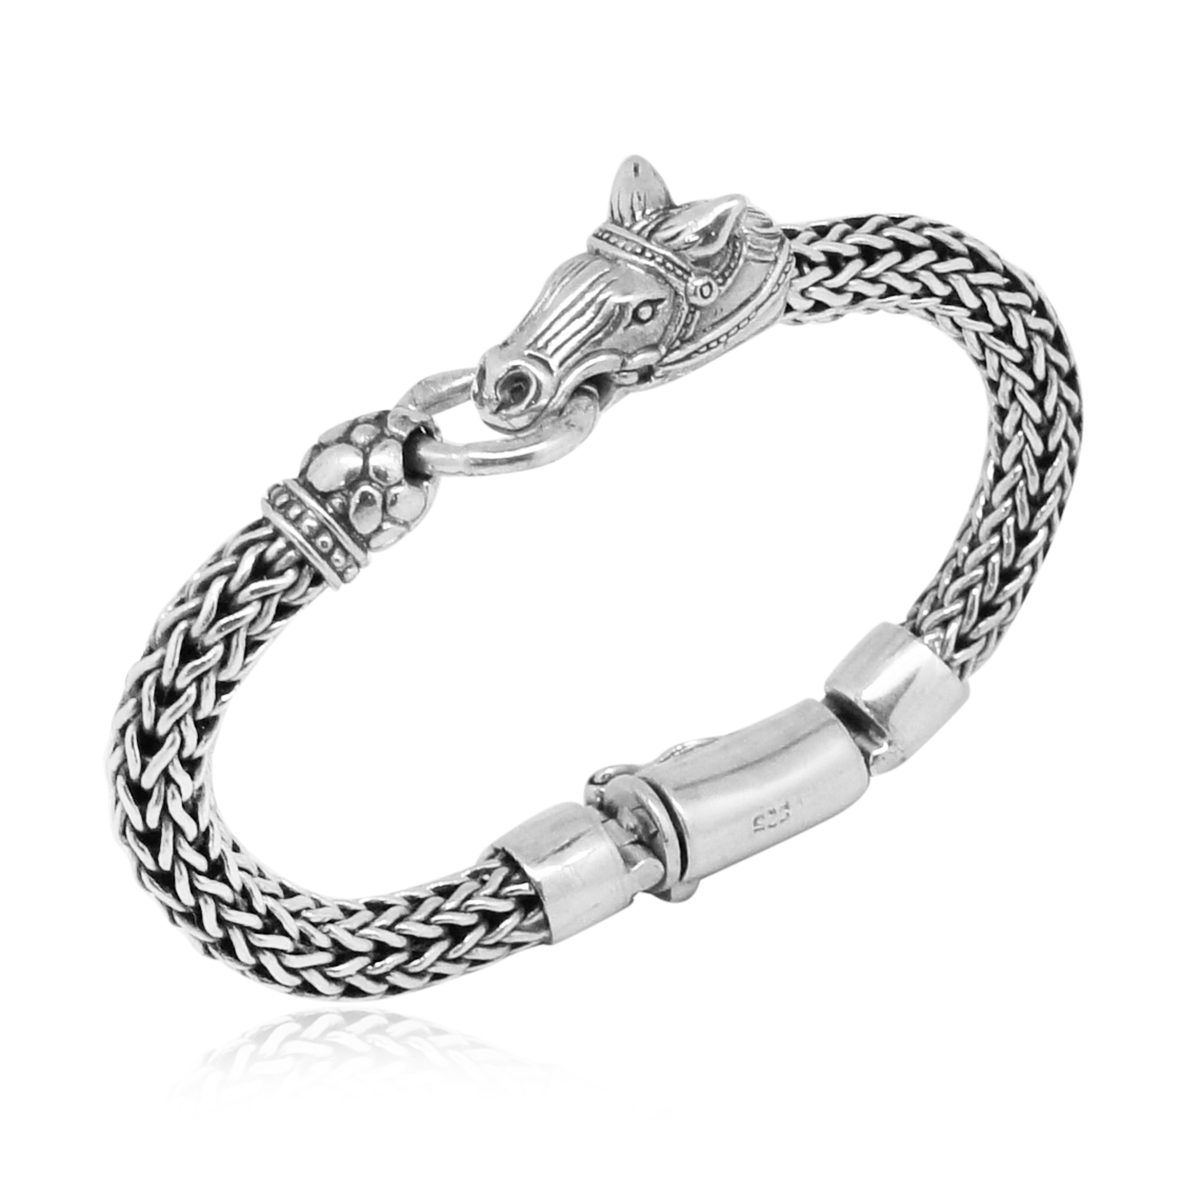 Bali Legacy Collection Sterling Silver Woven Horse Bracelet 7 50 In 51 6g